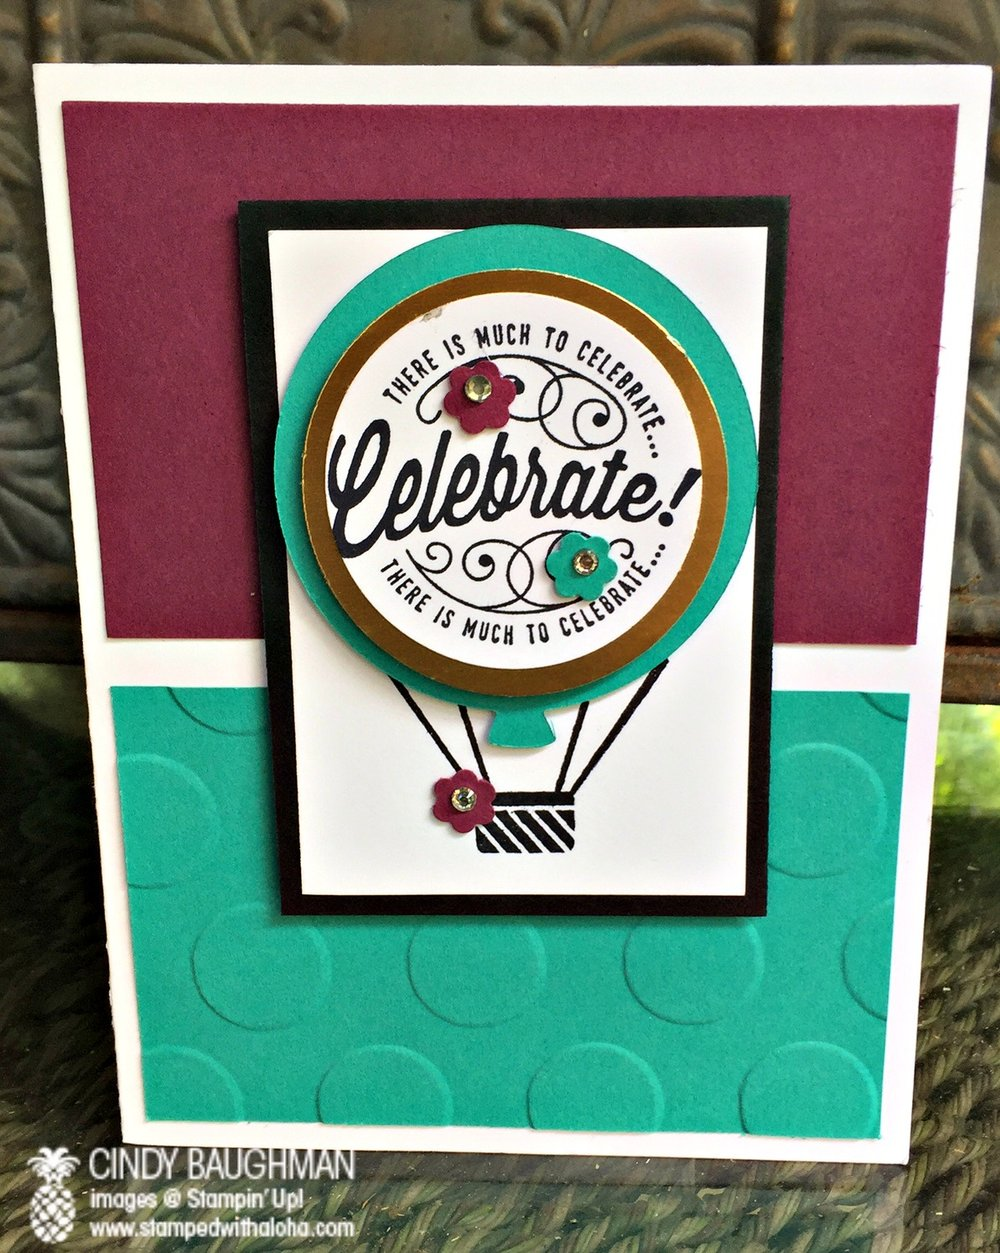 Here's To Cheer's Birthday Card - www.stampedwithaloha.com